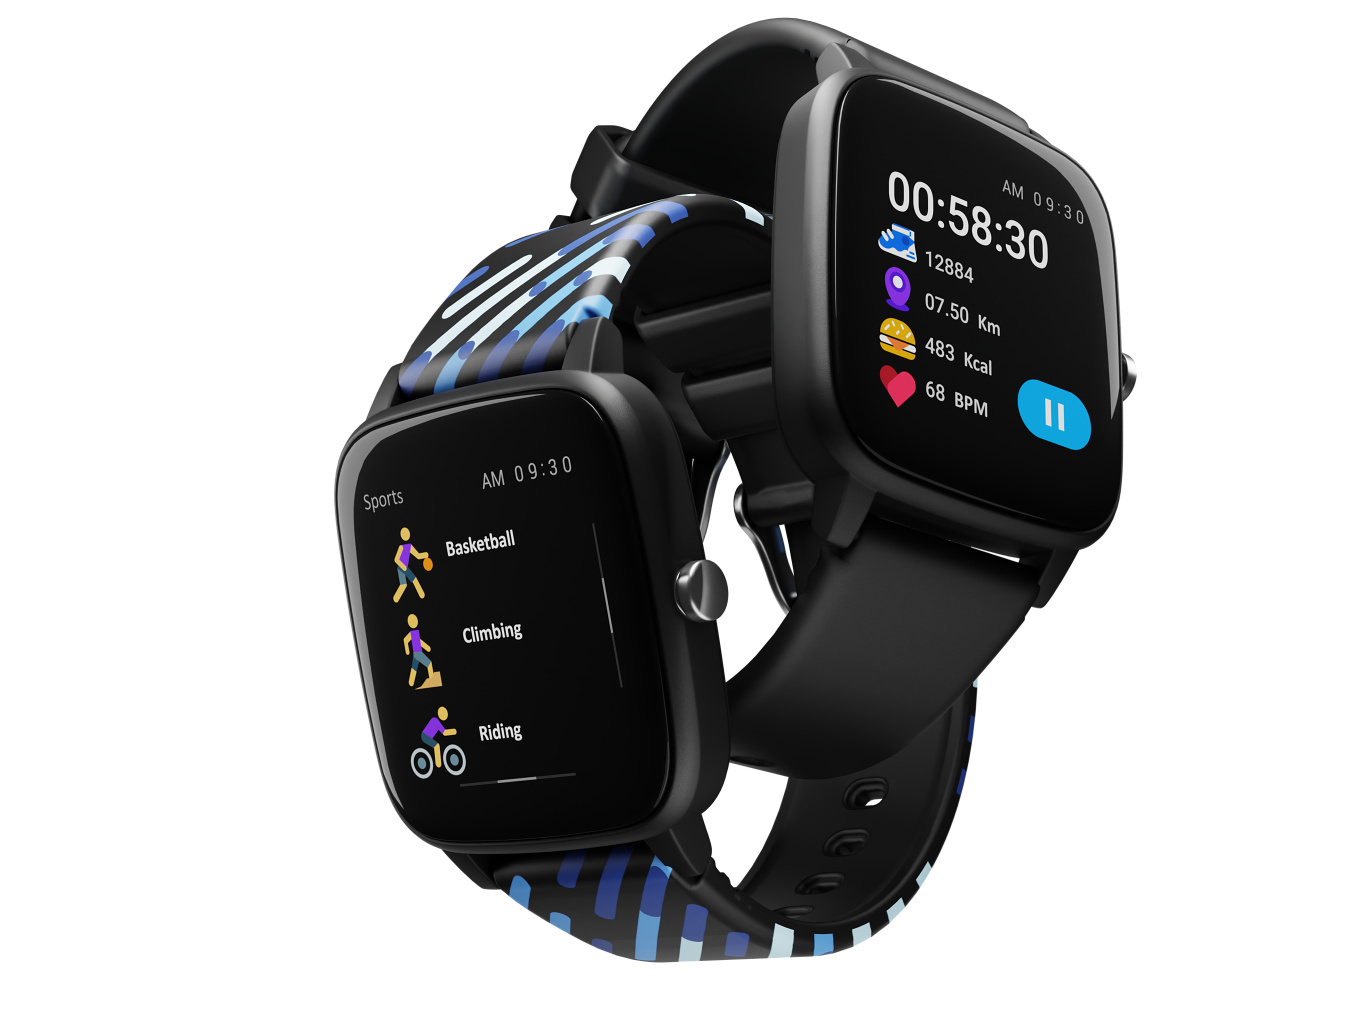 LAMAX BCool Black - Fitness and fun on your wrist